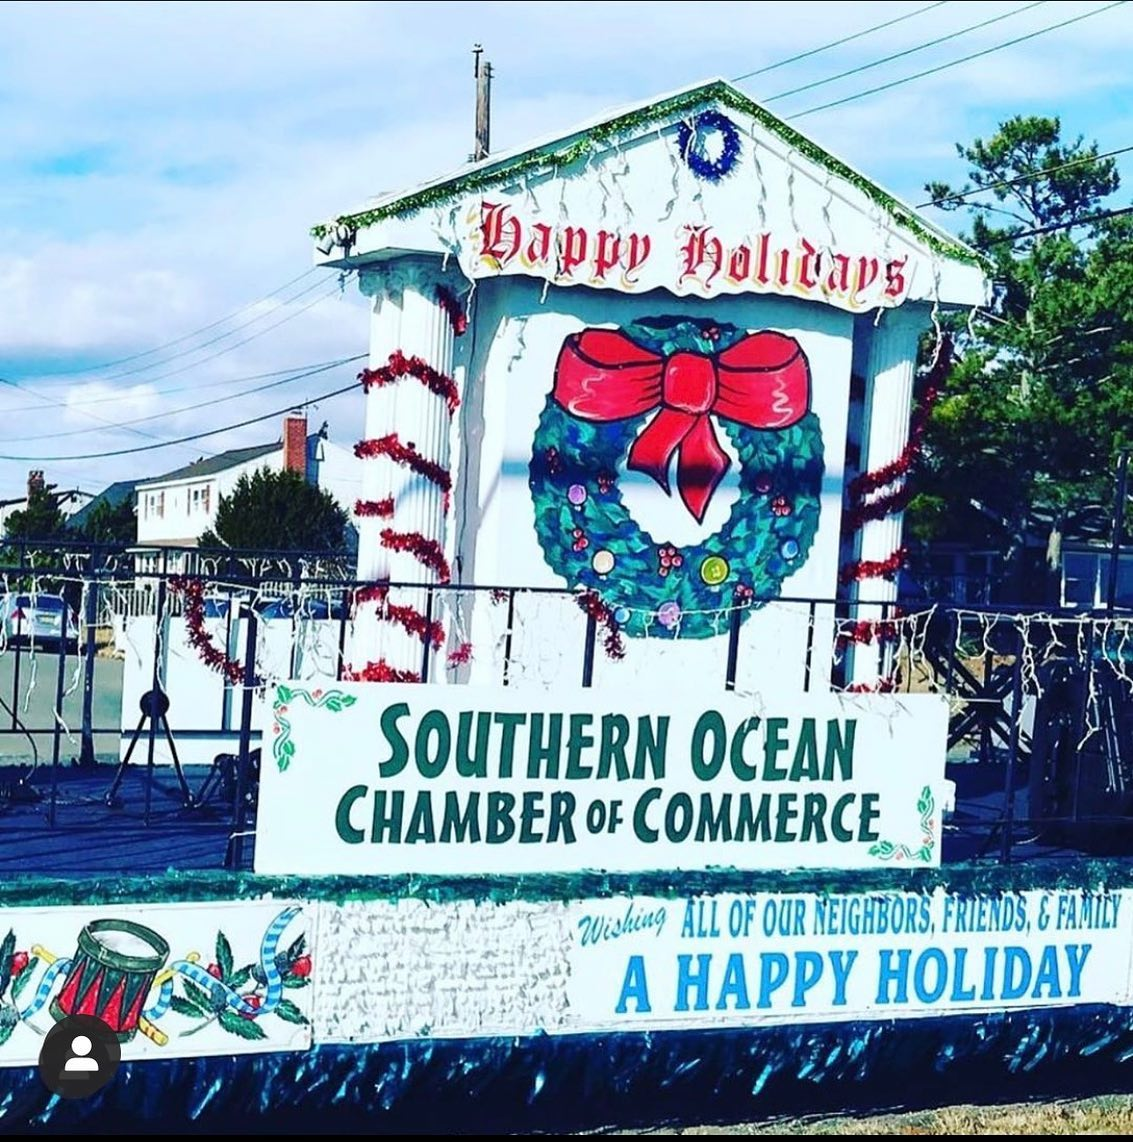 Ship Bottom Christmas Parade 2020 Unwrapping Plans for Dec 5 Ship Bottom Christmas Parade   Visit